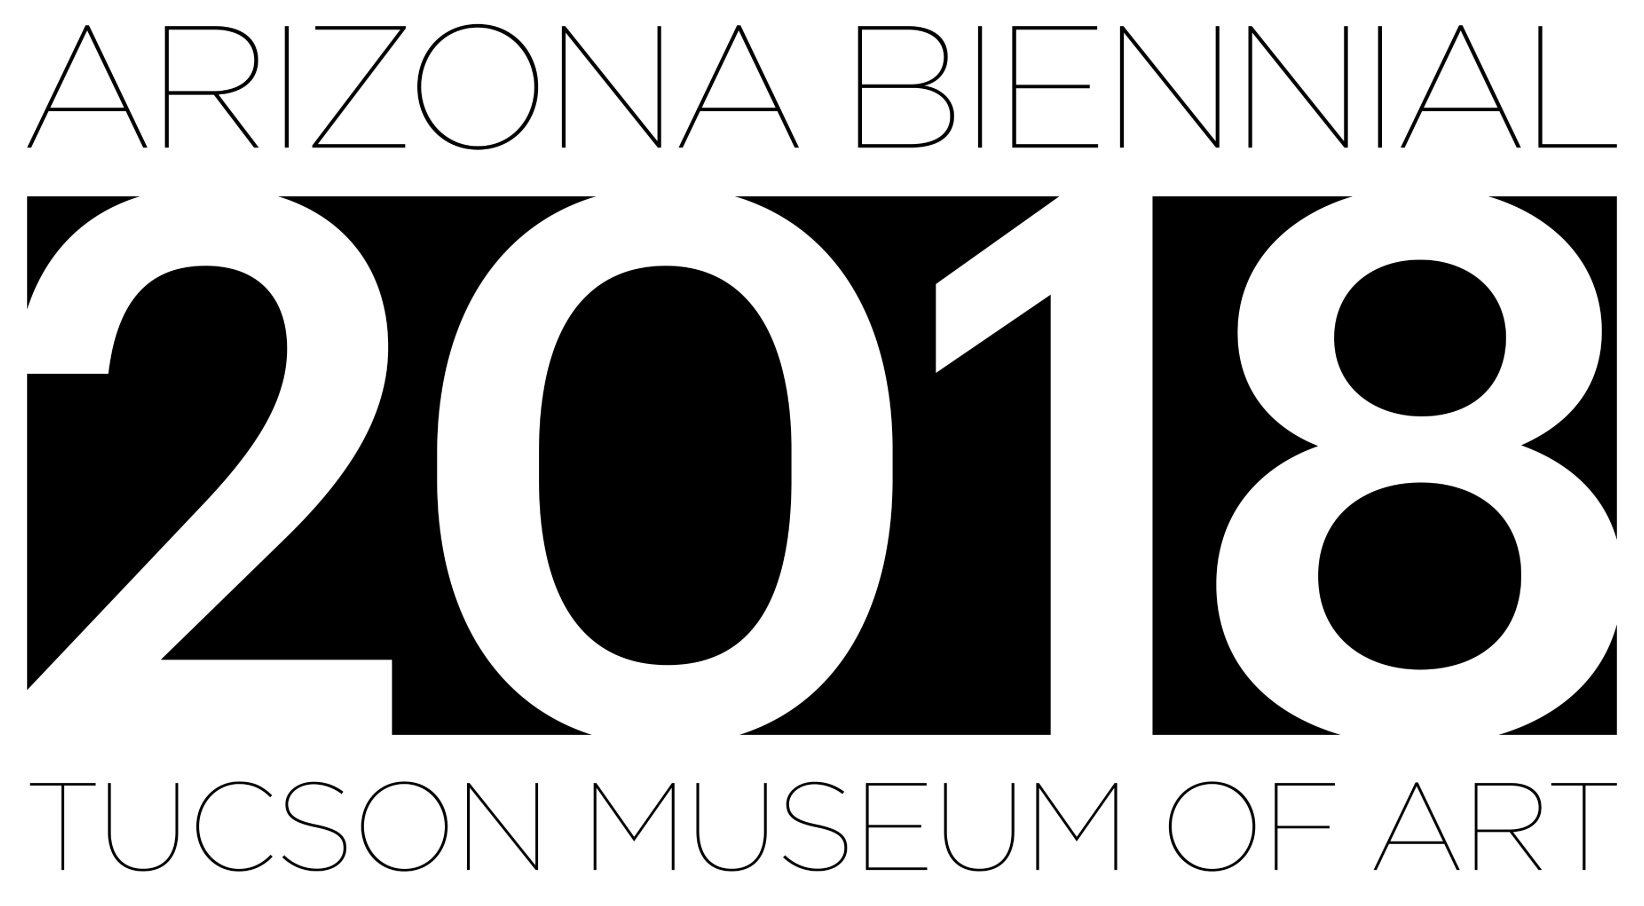 Graphic for the Arizona Biennial 2018.